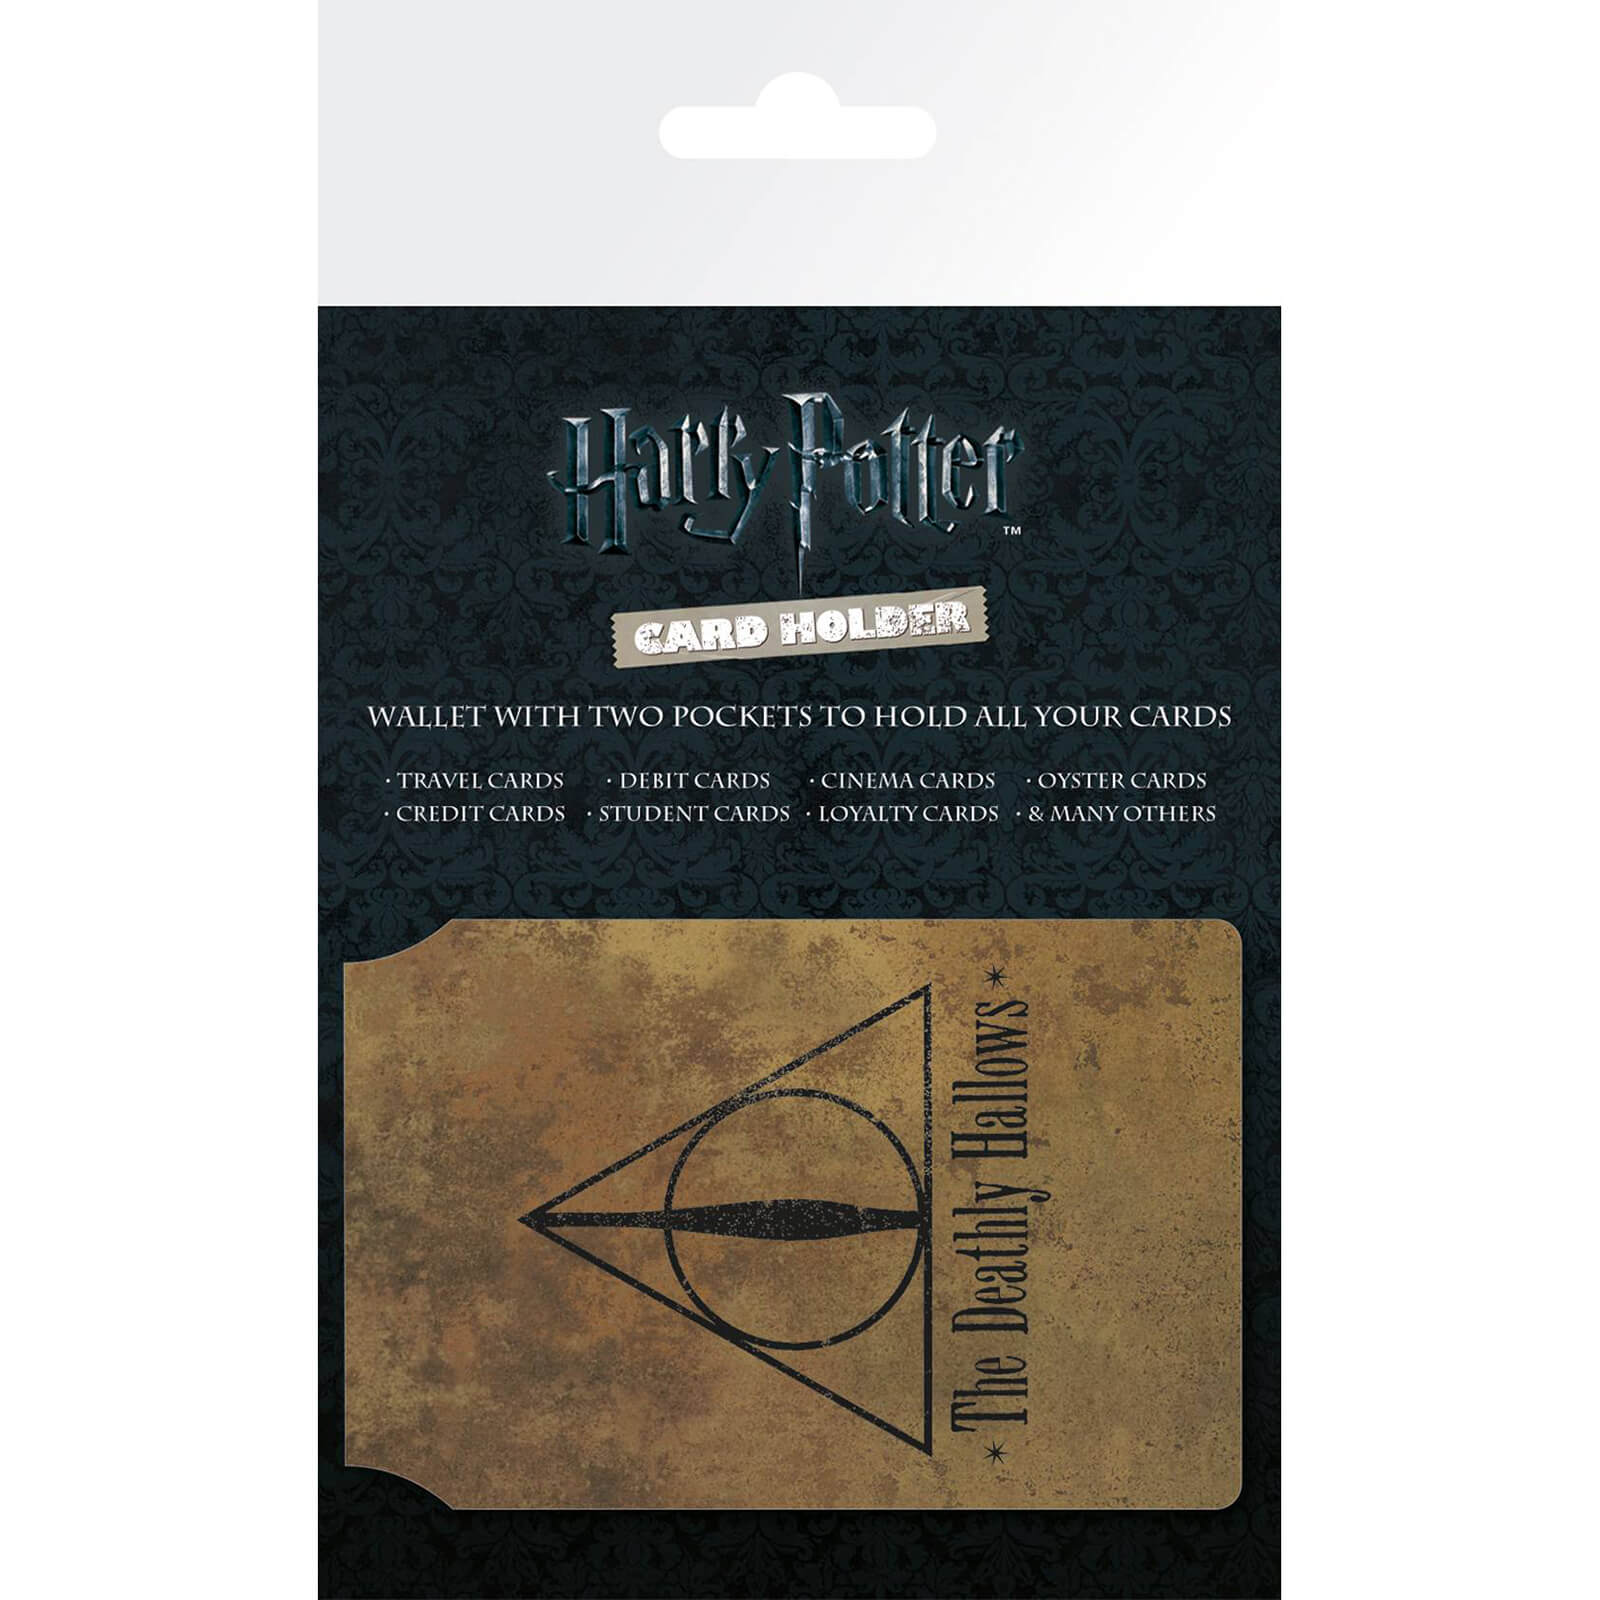 Harry Potter Deathly Hallows Card Holder